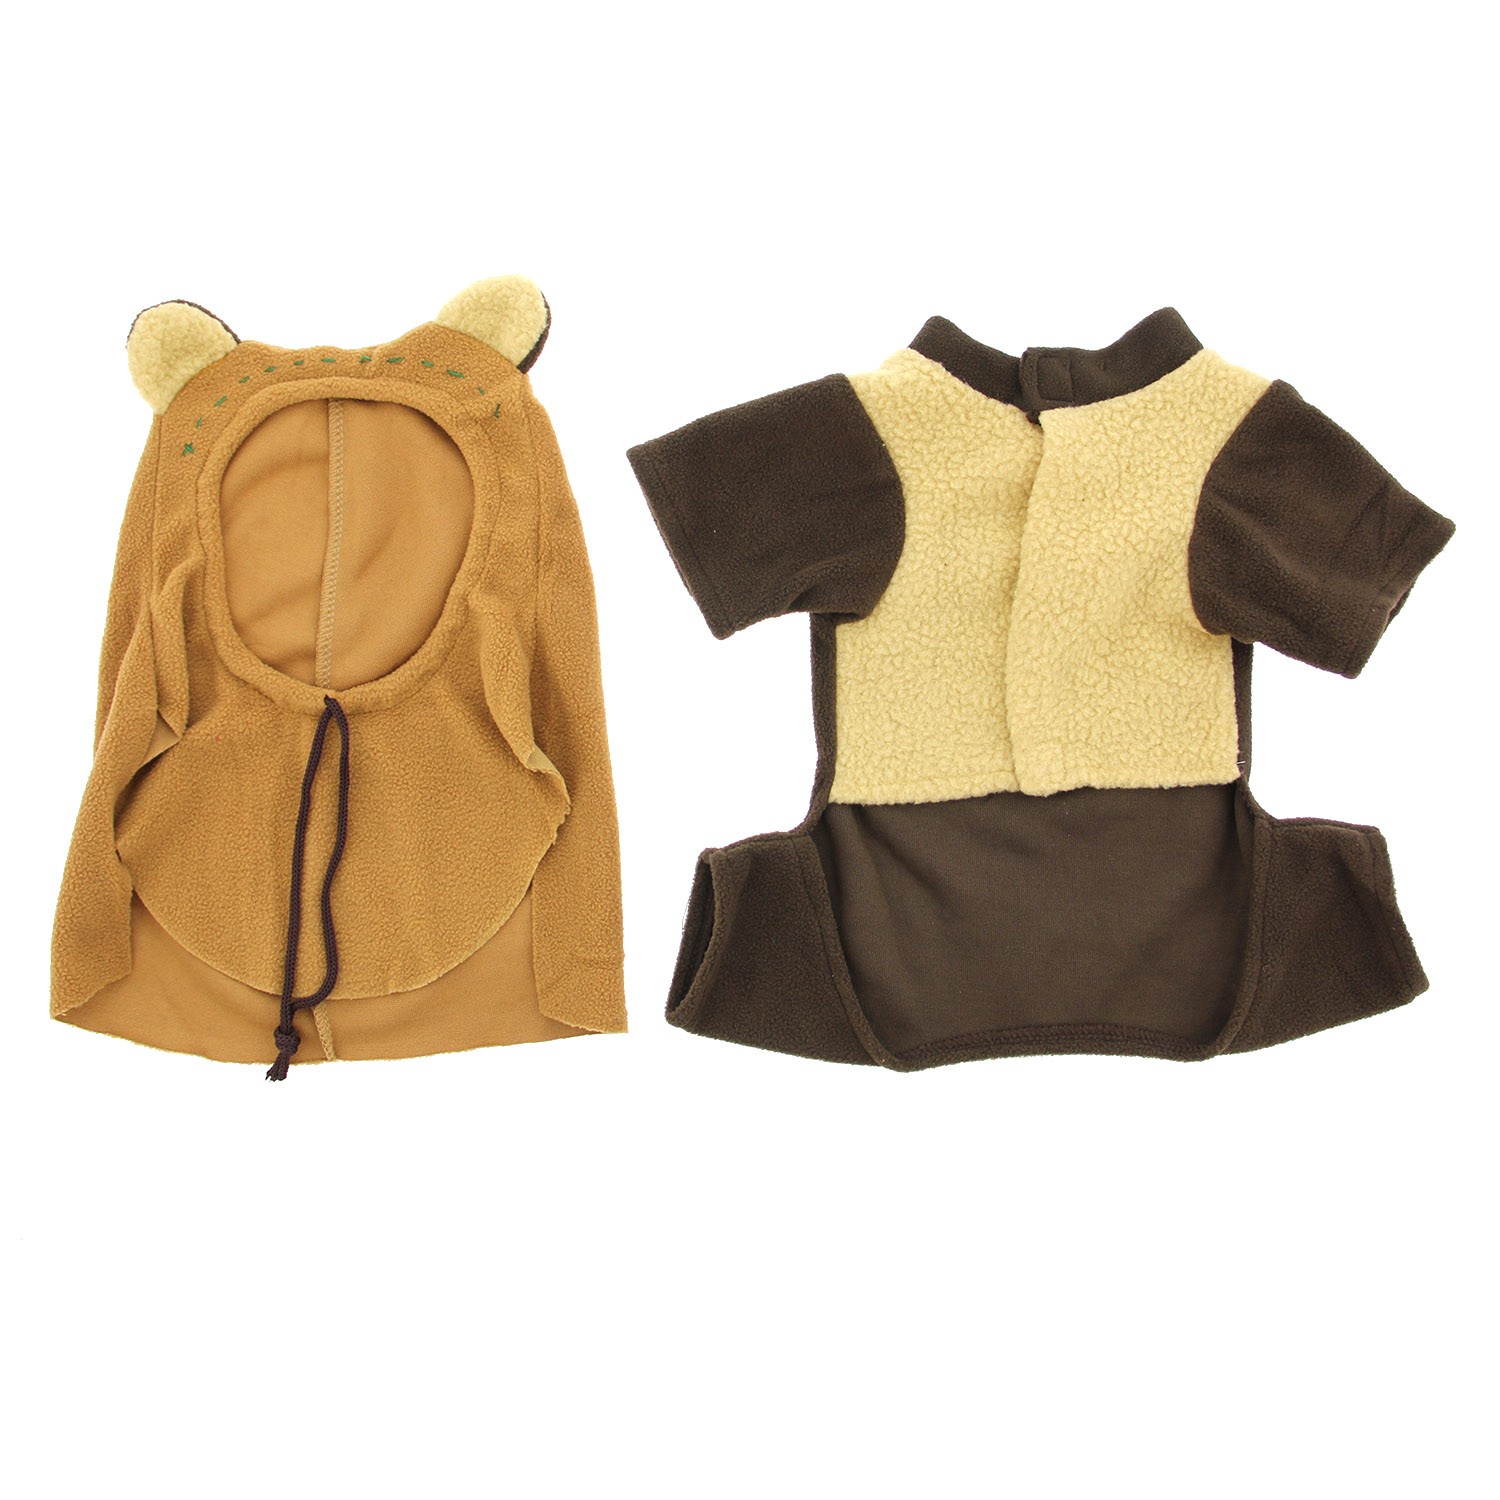 star wars pet costumes ewok costume model ideas. Black Bedroom Furniture Sets. Home Design Ideas